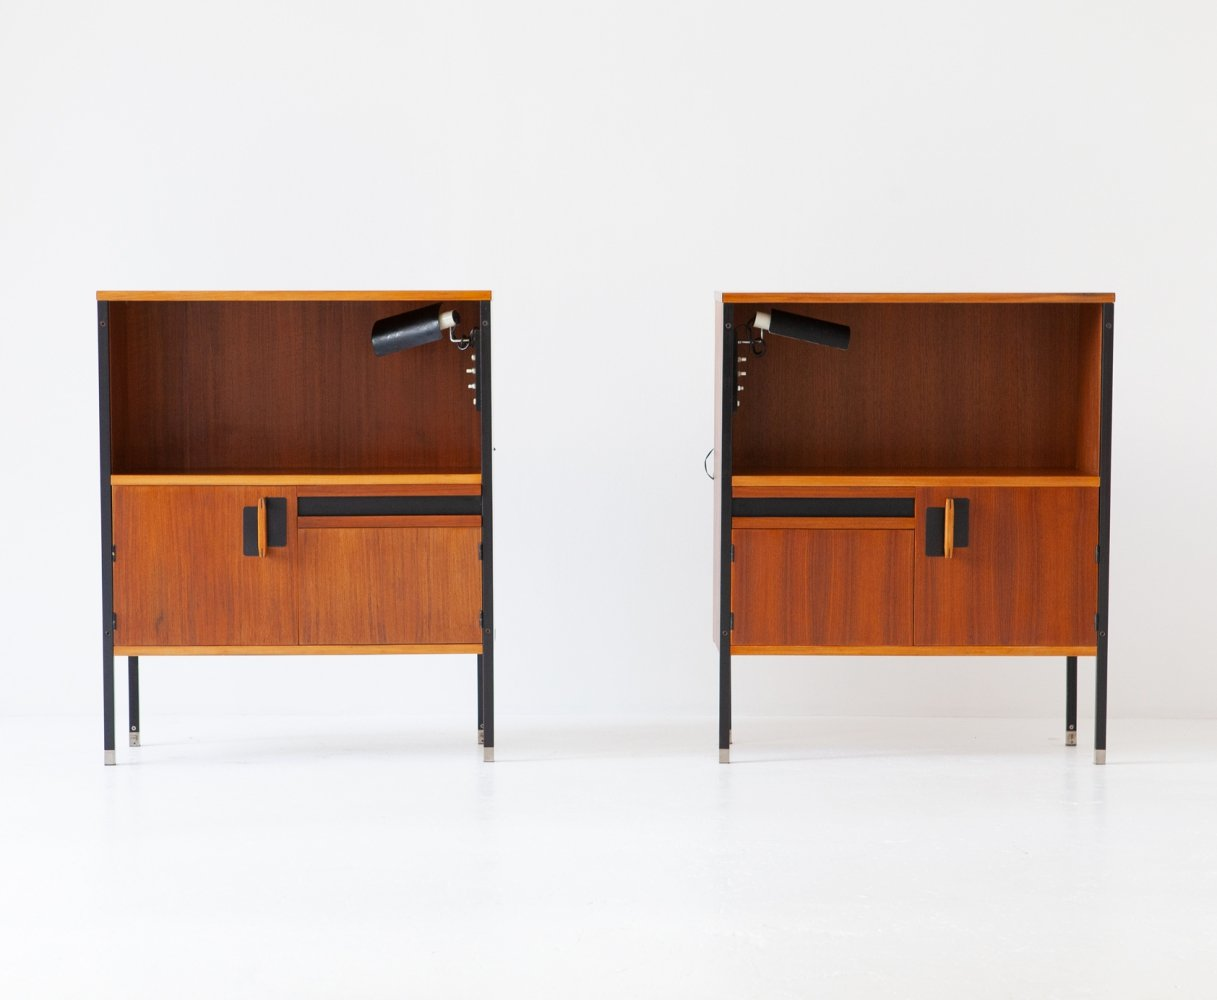 Nightstands by Ico Parisi for MIM with Gino Sarfatti Lamps, 1958